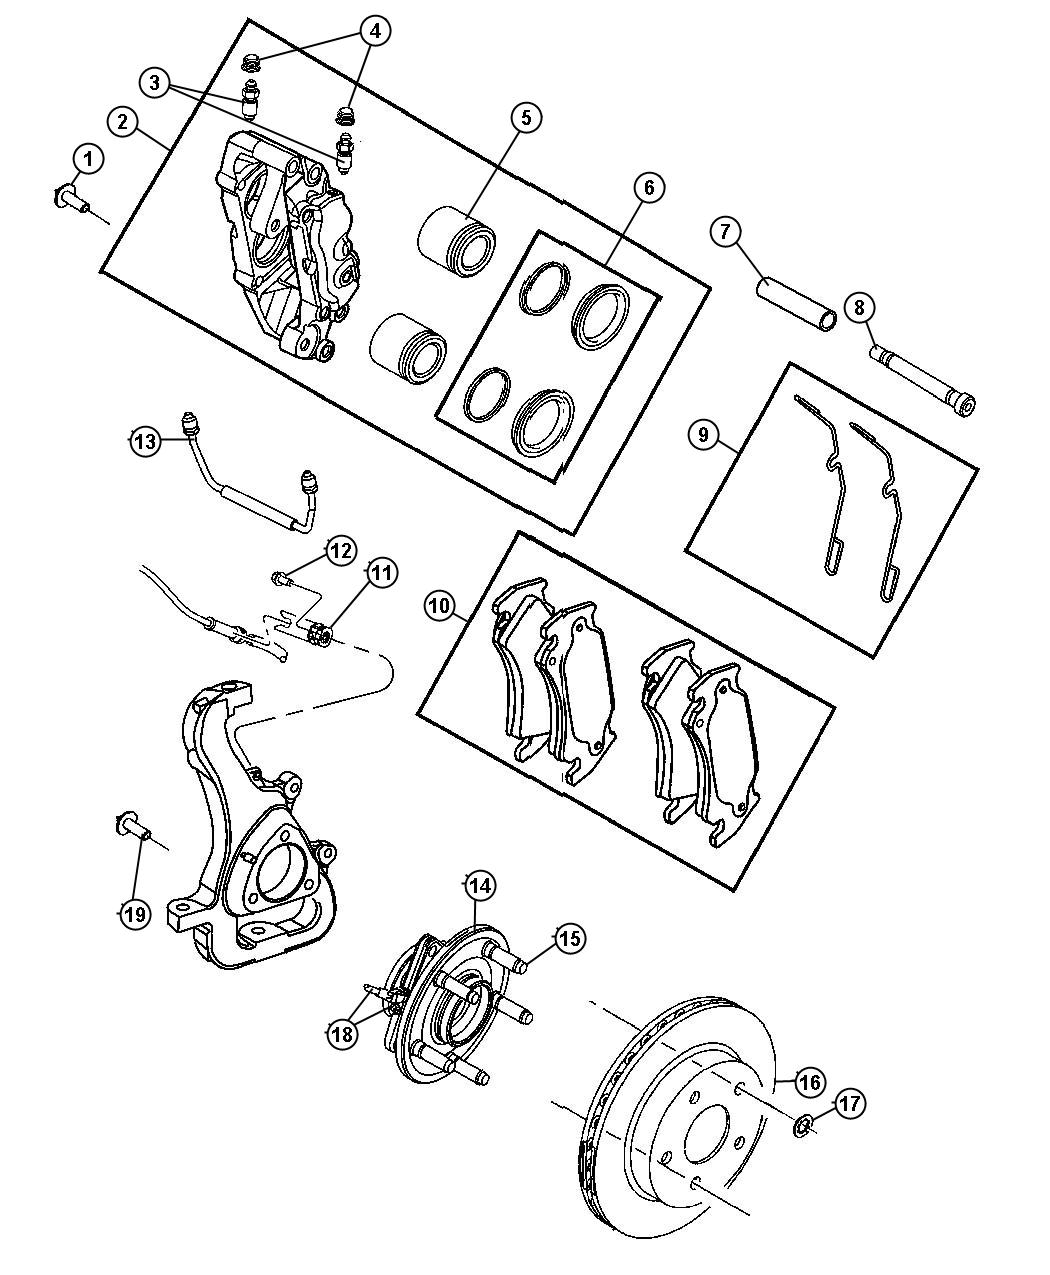 tags: #ford expedition brake caliper diagram#ford f 250 front brakes diagram #ford f 250 rear brake diagram#s10 brake line diagram#ford f 250 brake